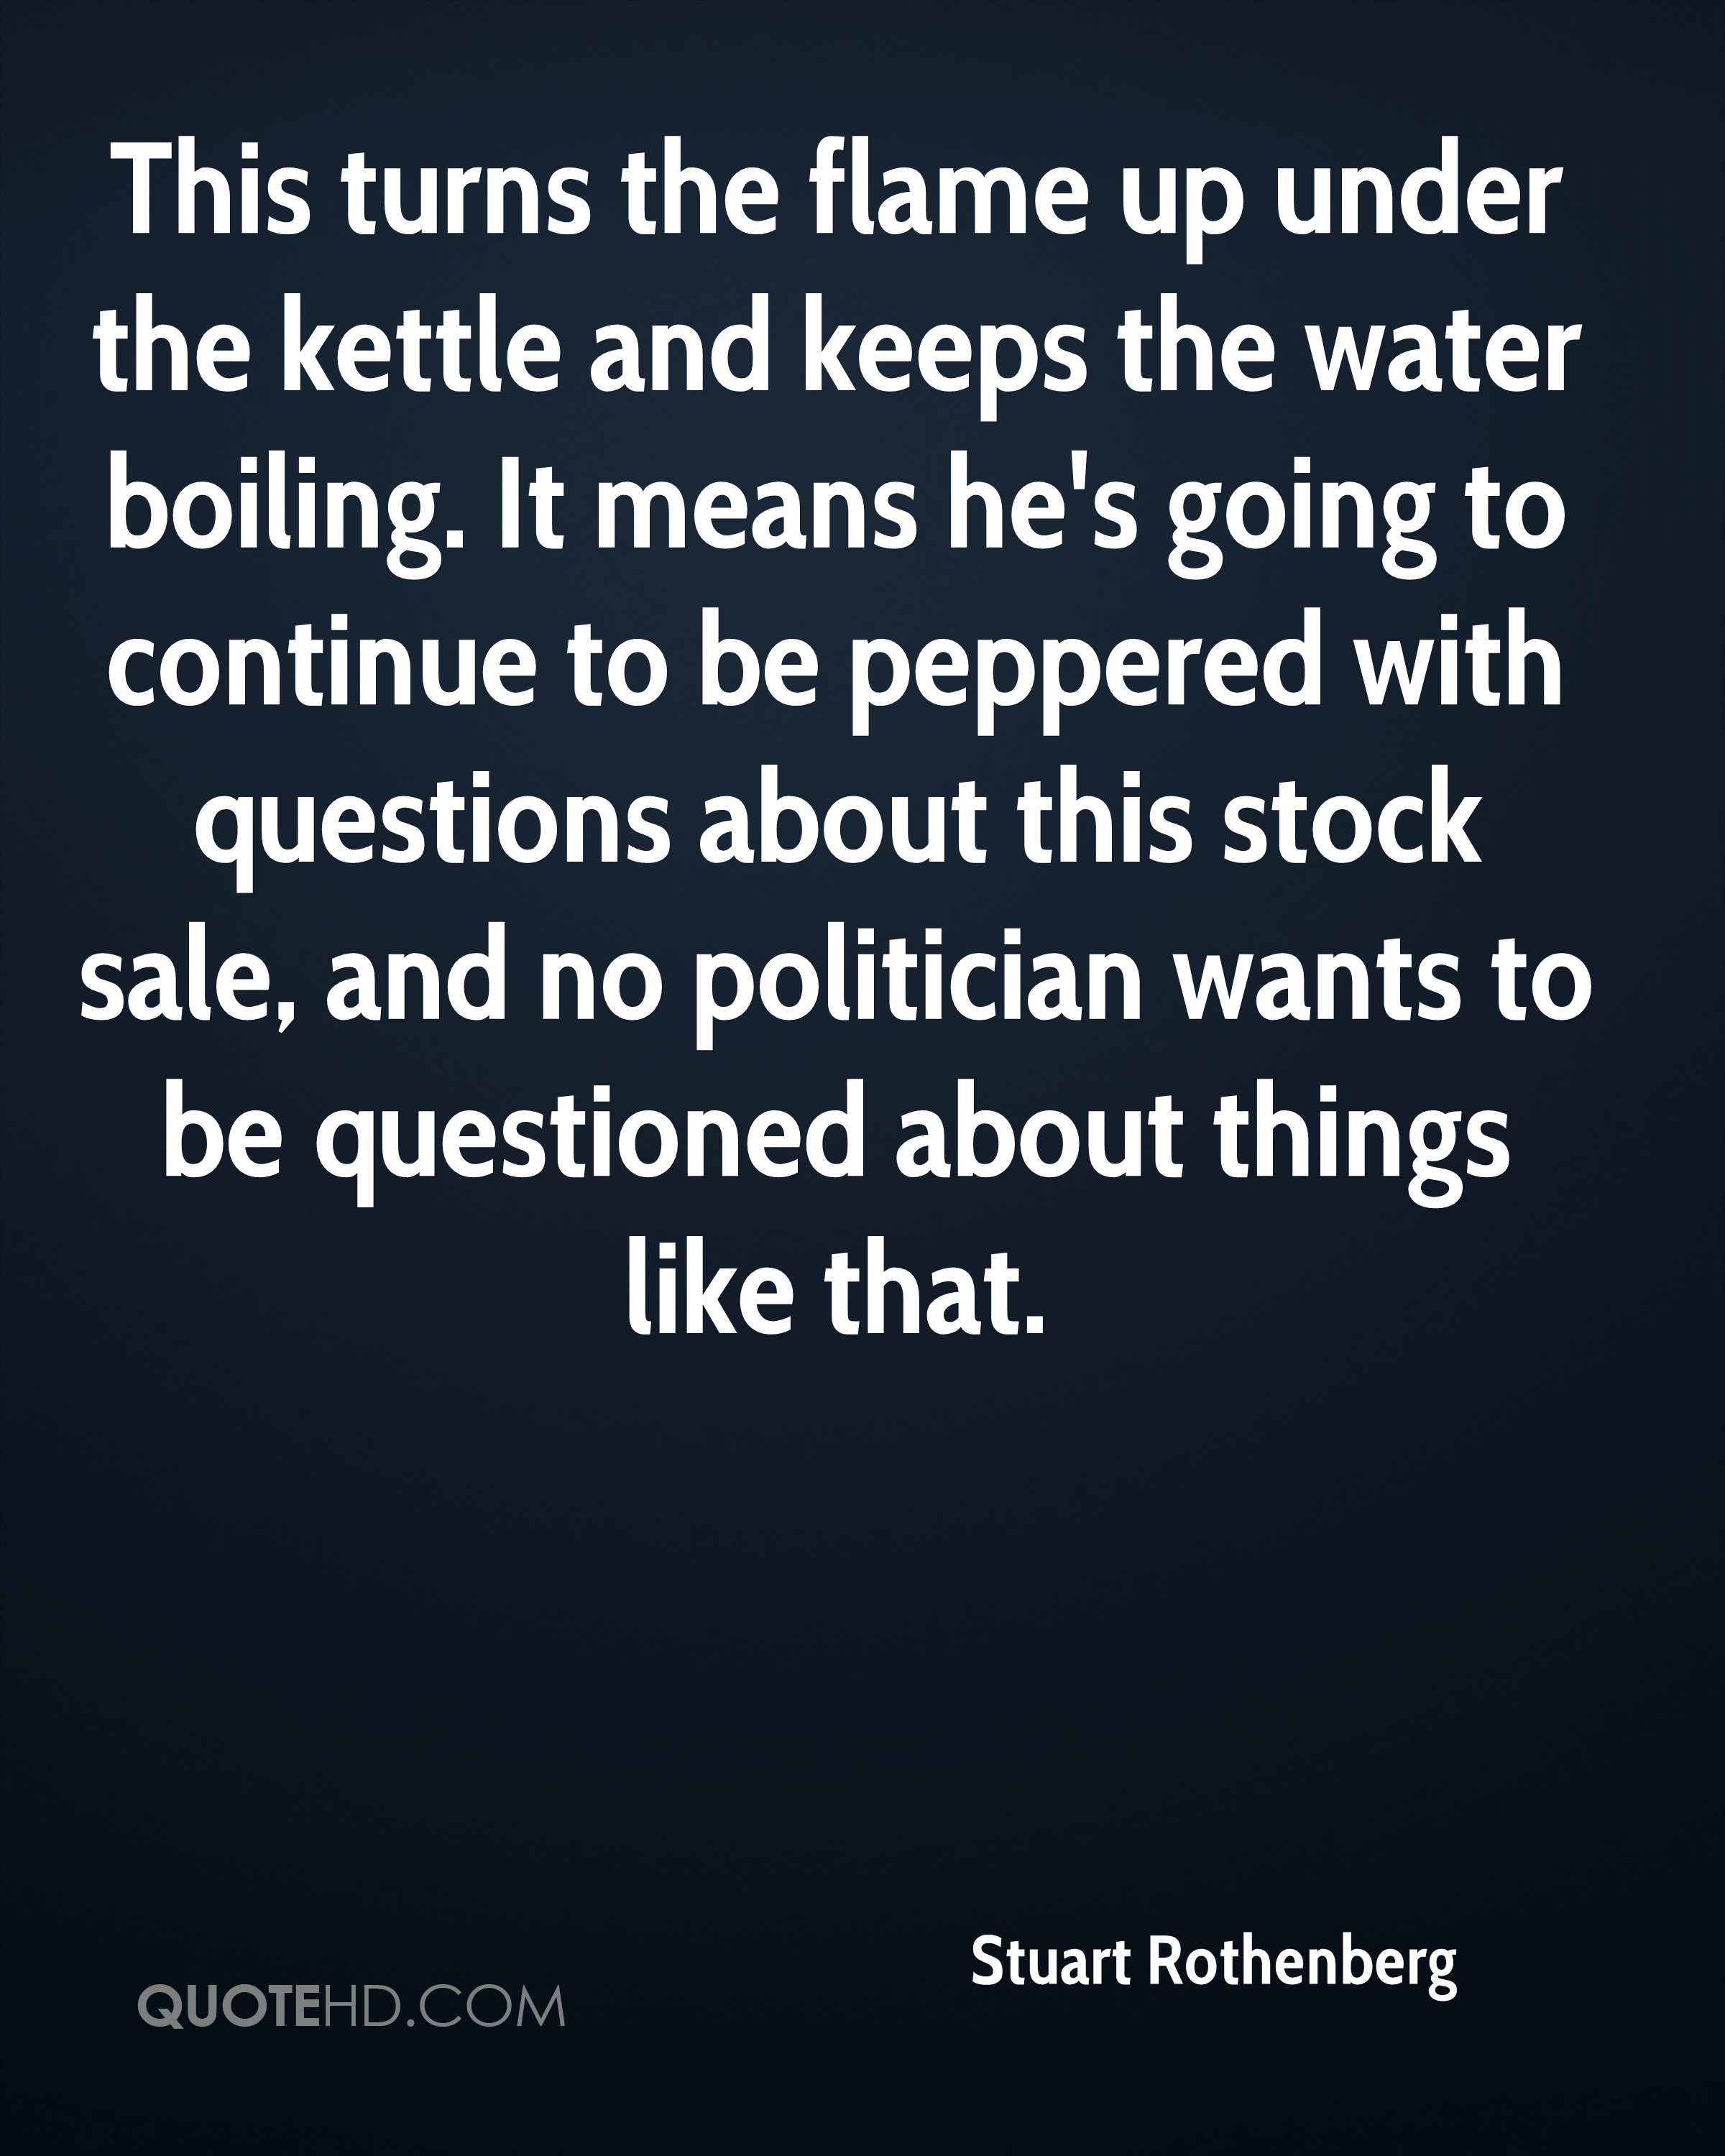 This turns the flame up under the kettle and keeps the water boiling. It means he's going to continue to be peppered with questions about this stock sale, and no politician wants to be questioned about things like that.